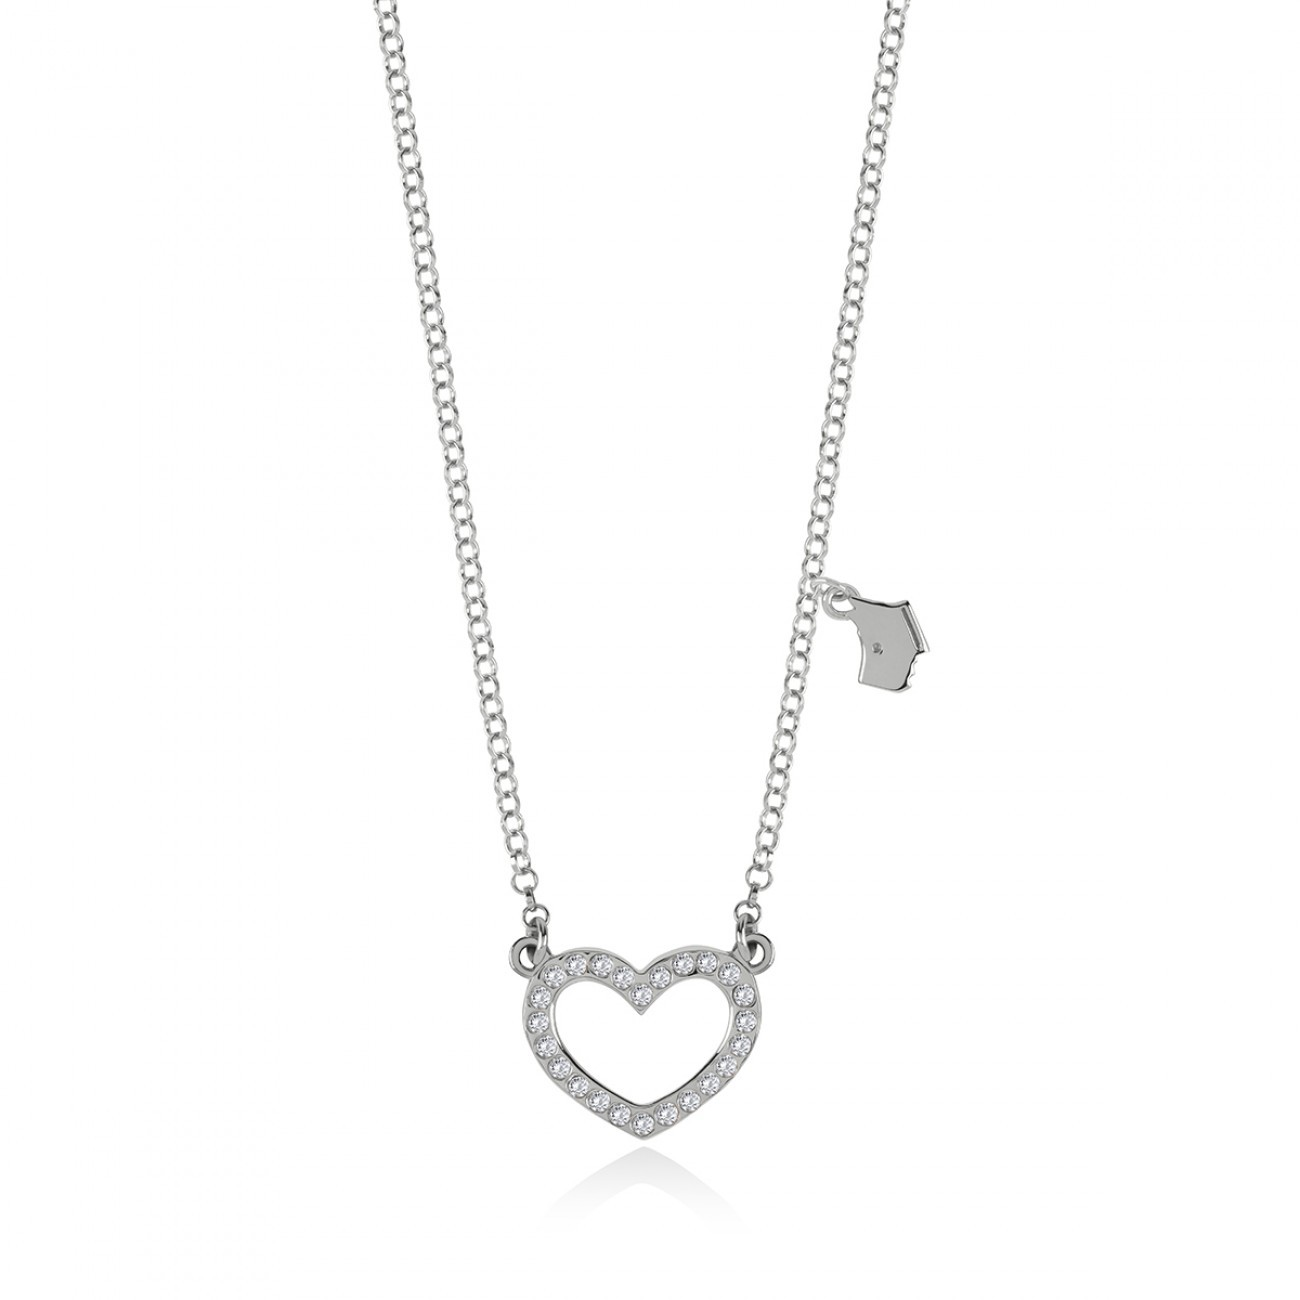 Radley London Heart Heart  Necklace